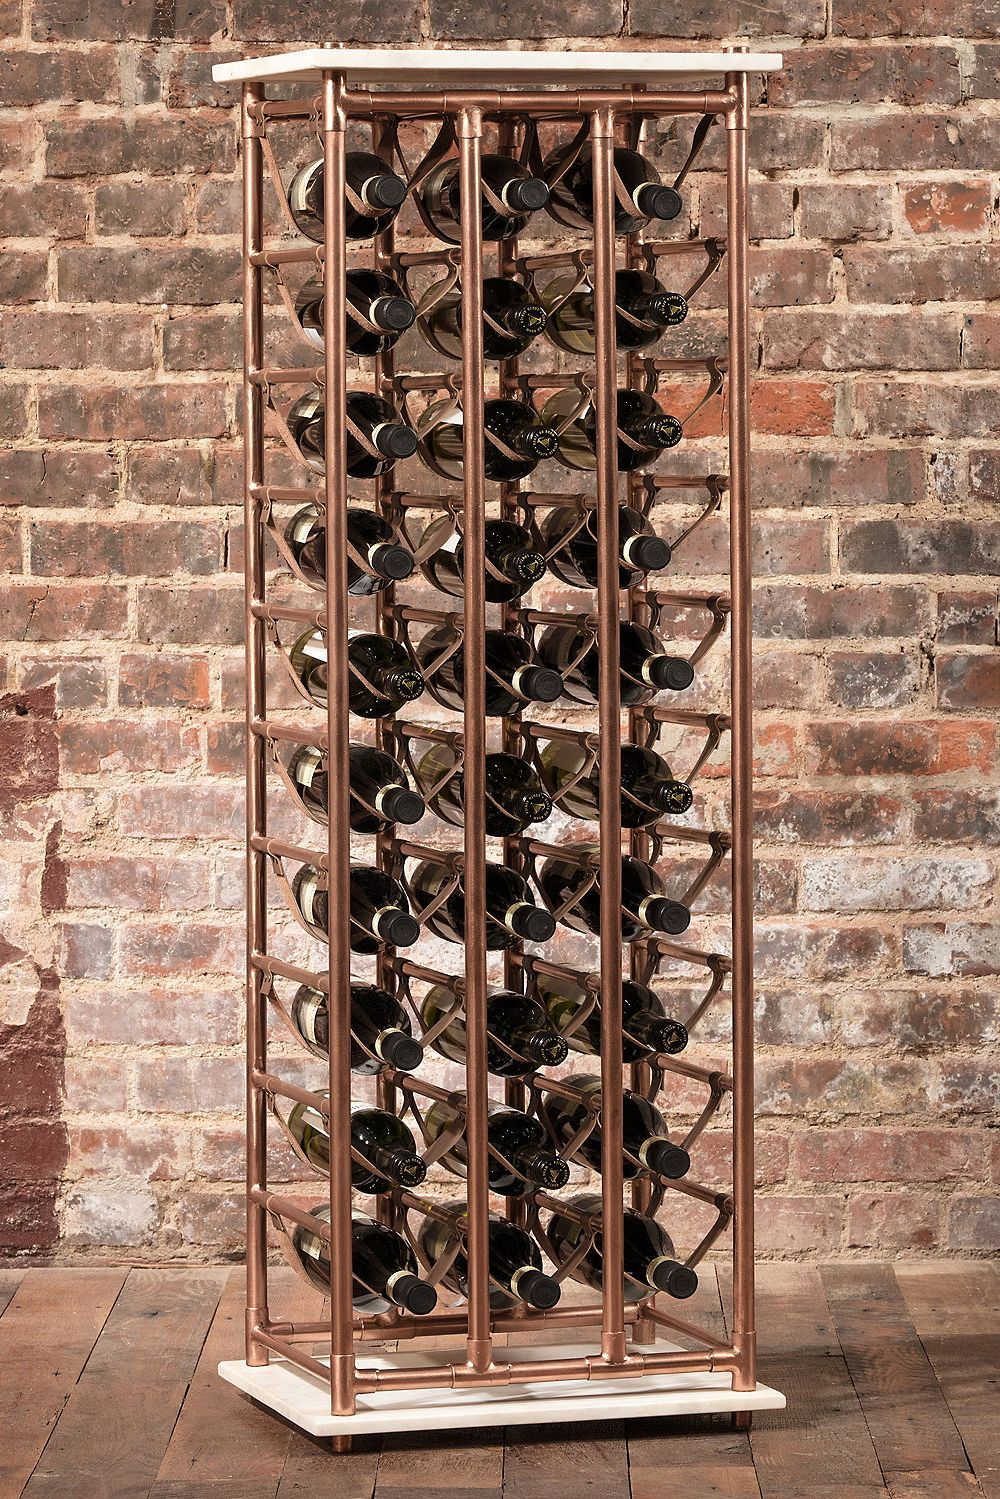 Genuine Leather Sleek Marble And Rose Gold Plating Effortlessly Combine To Create This Contemporary Wine Rack That S Up 30 Bottles